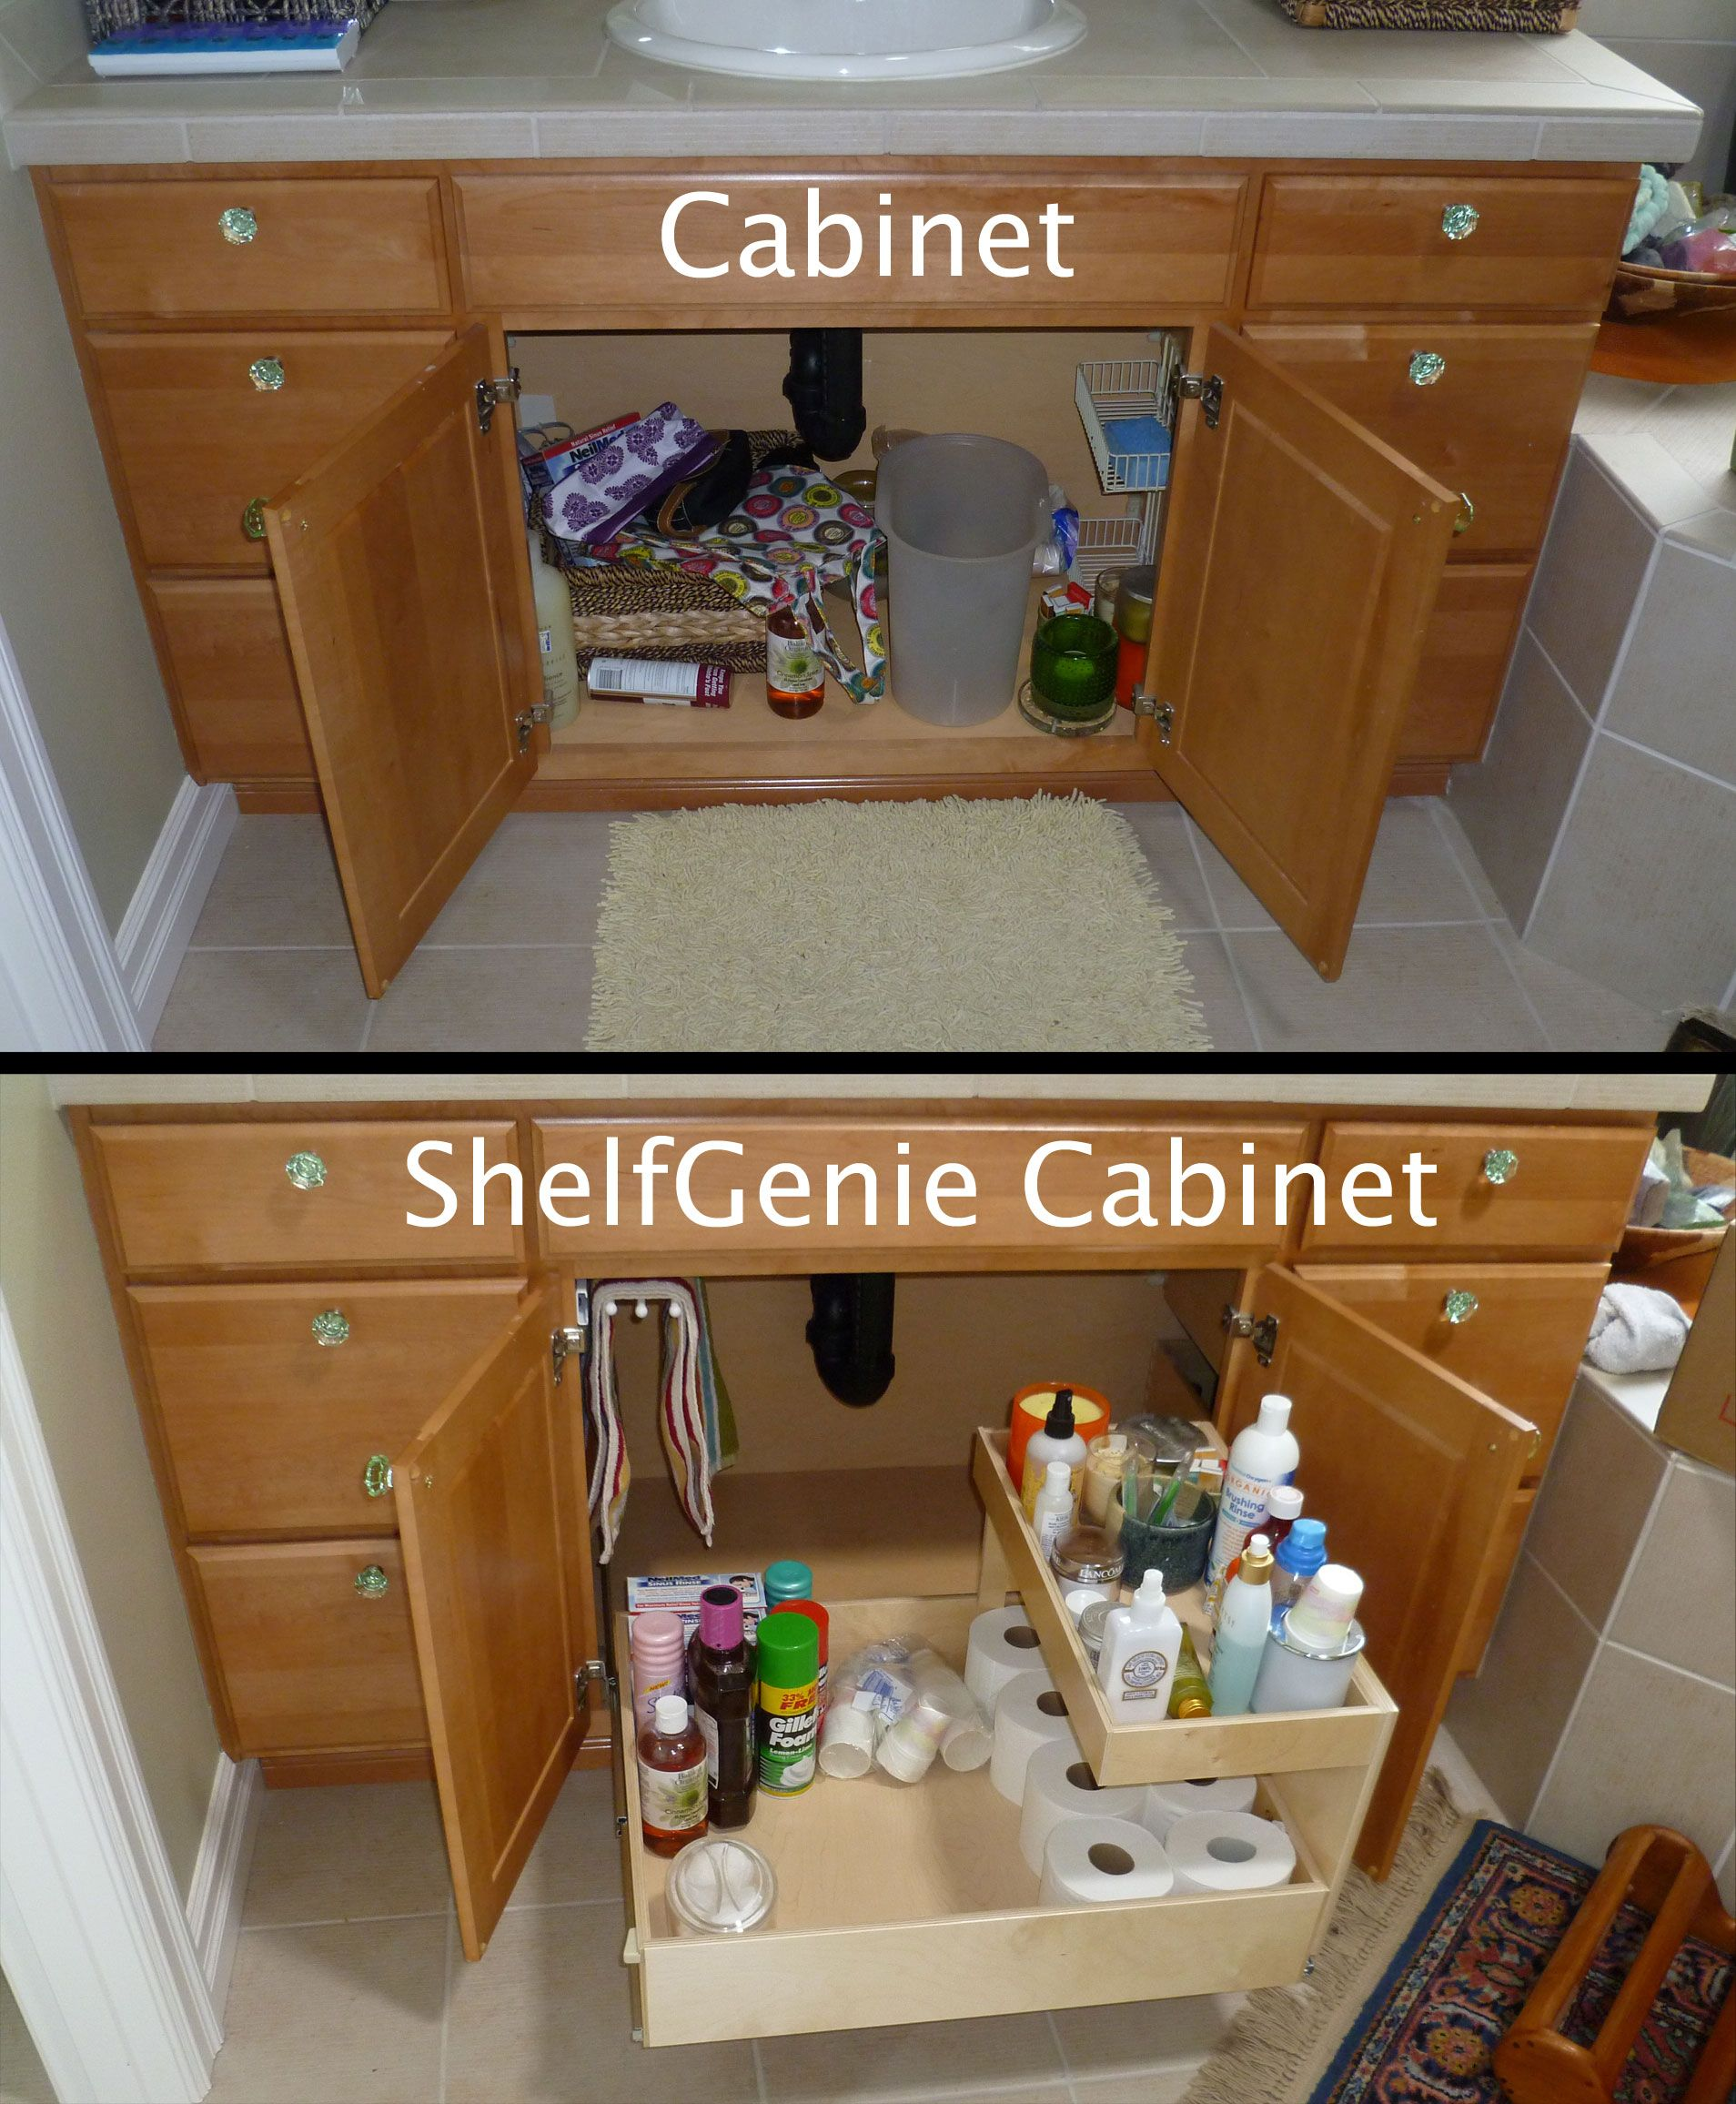 adding shelves to kitchen cabinets free standing cupboards the recipe for turning this cabinet into a shelfgenie